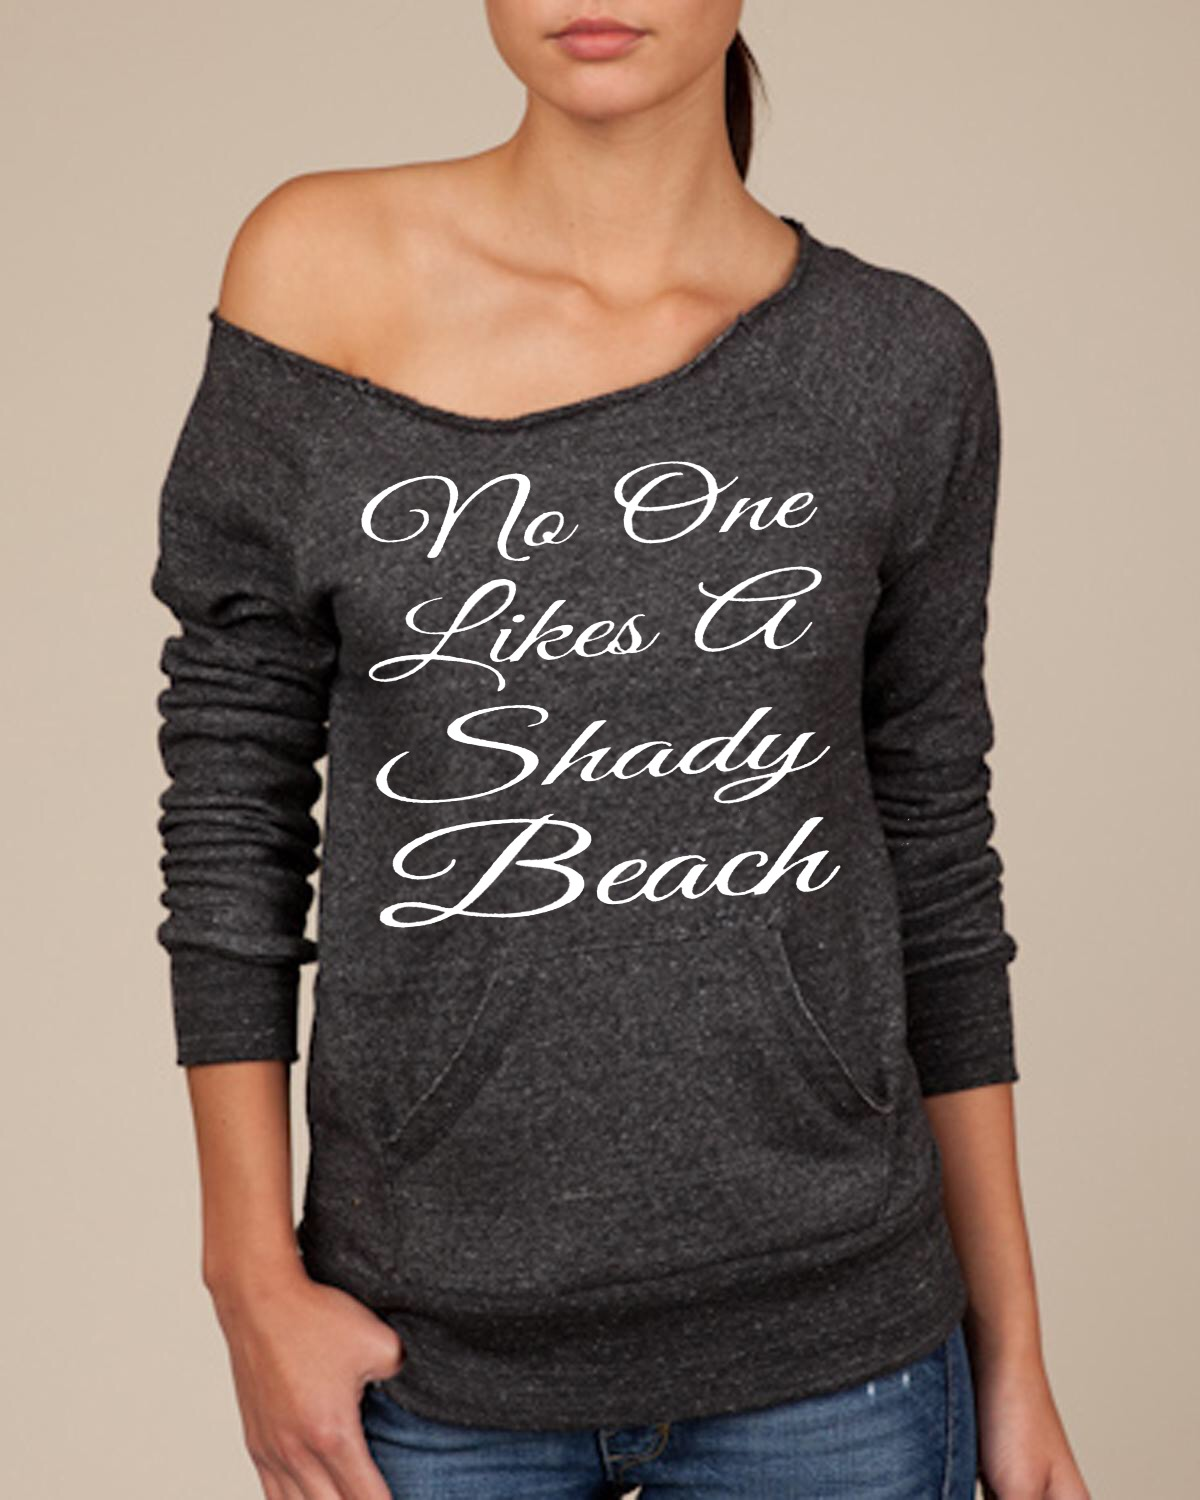 No One Likes A Shady Beach.  Women's Scoop Neck Sweatshirt